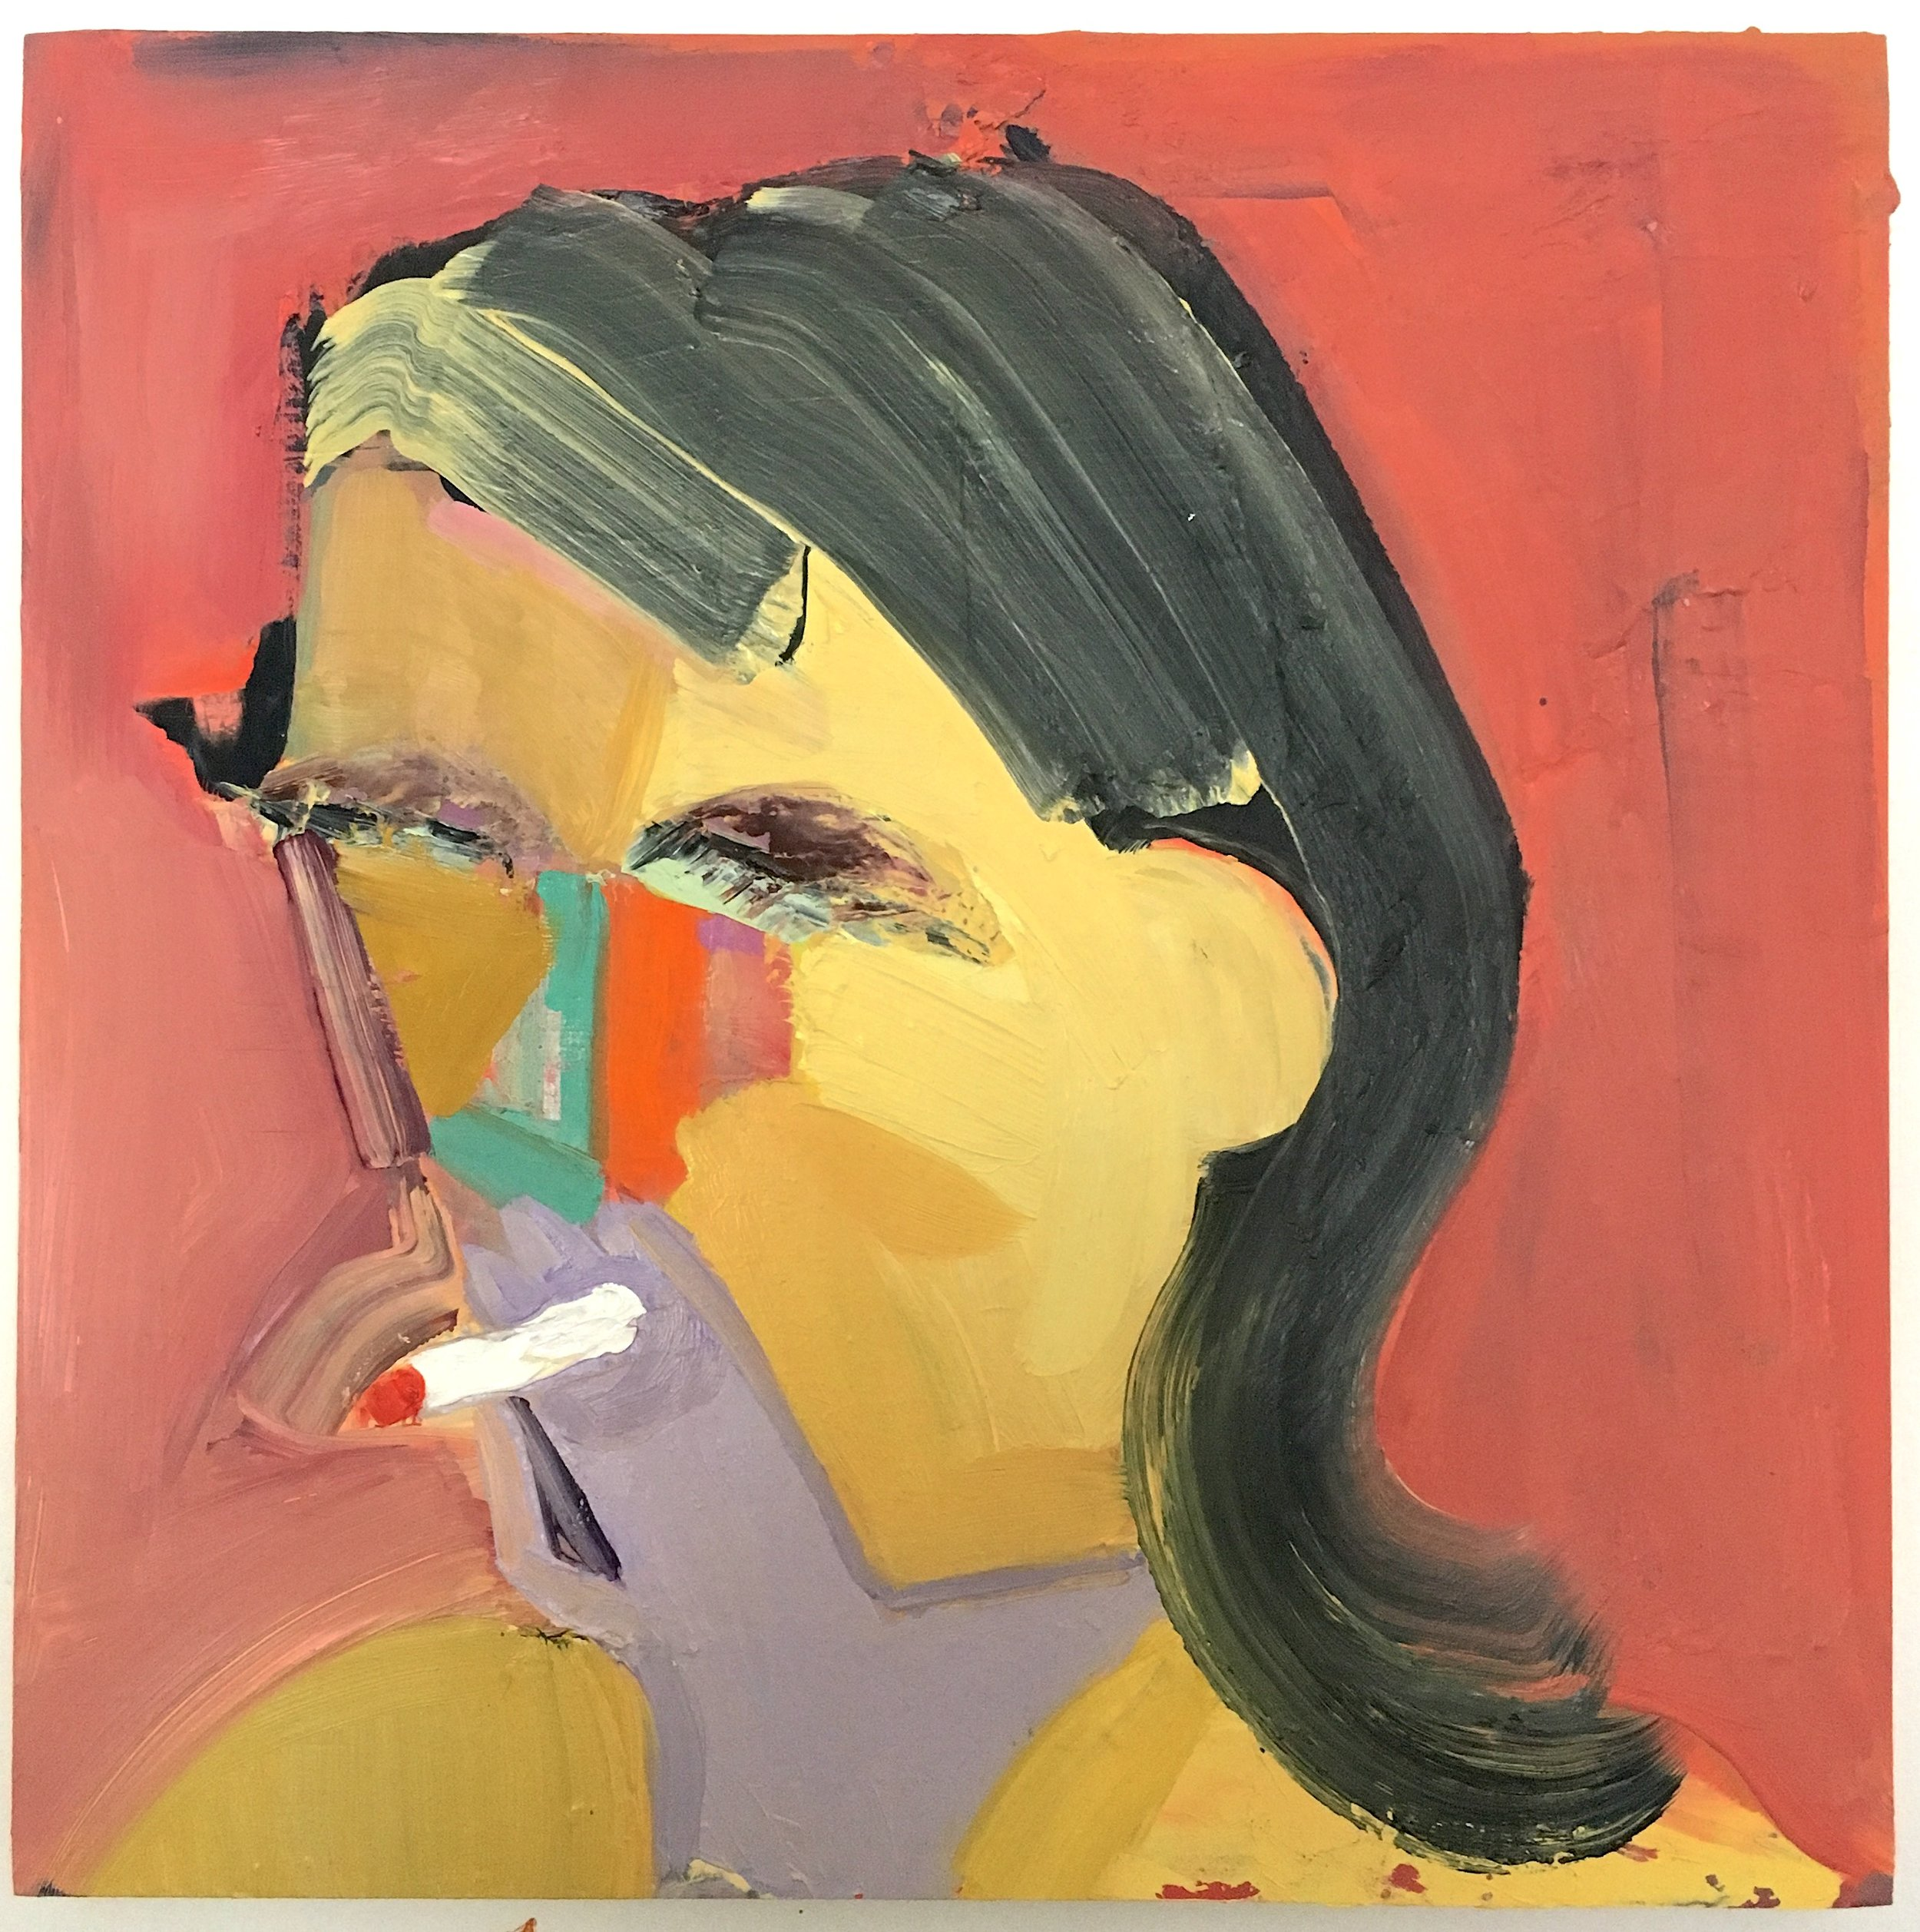 Danielle Orchard,Red Smoker, 2015, oil on panel 12 x 12 inches